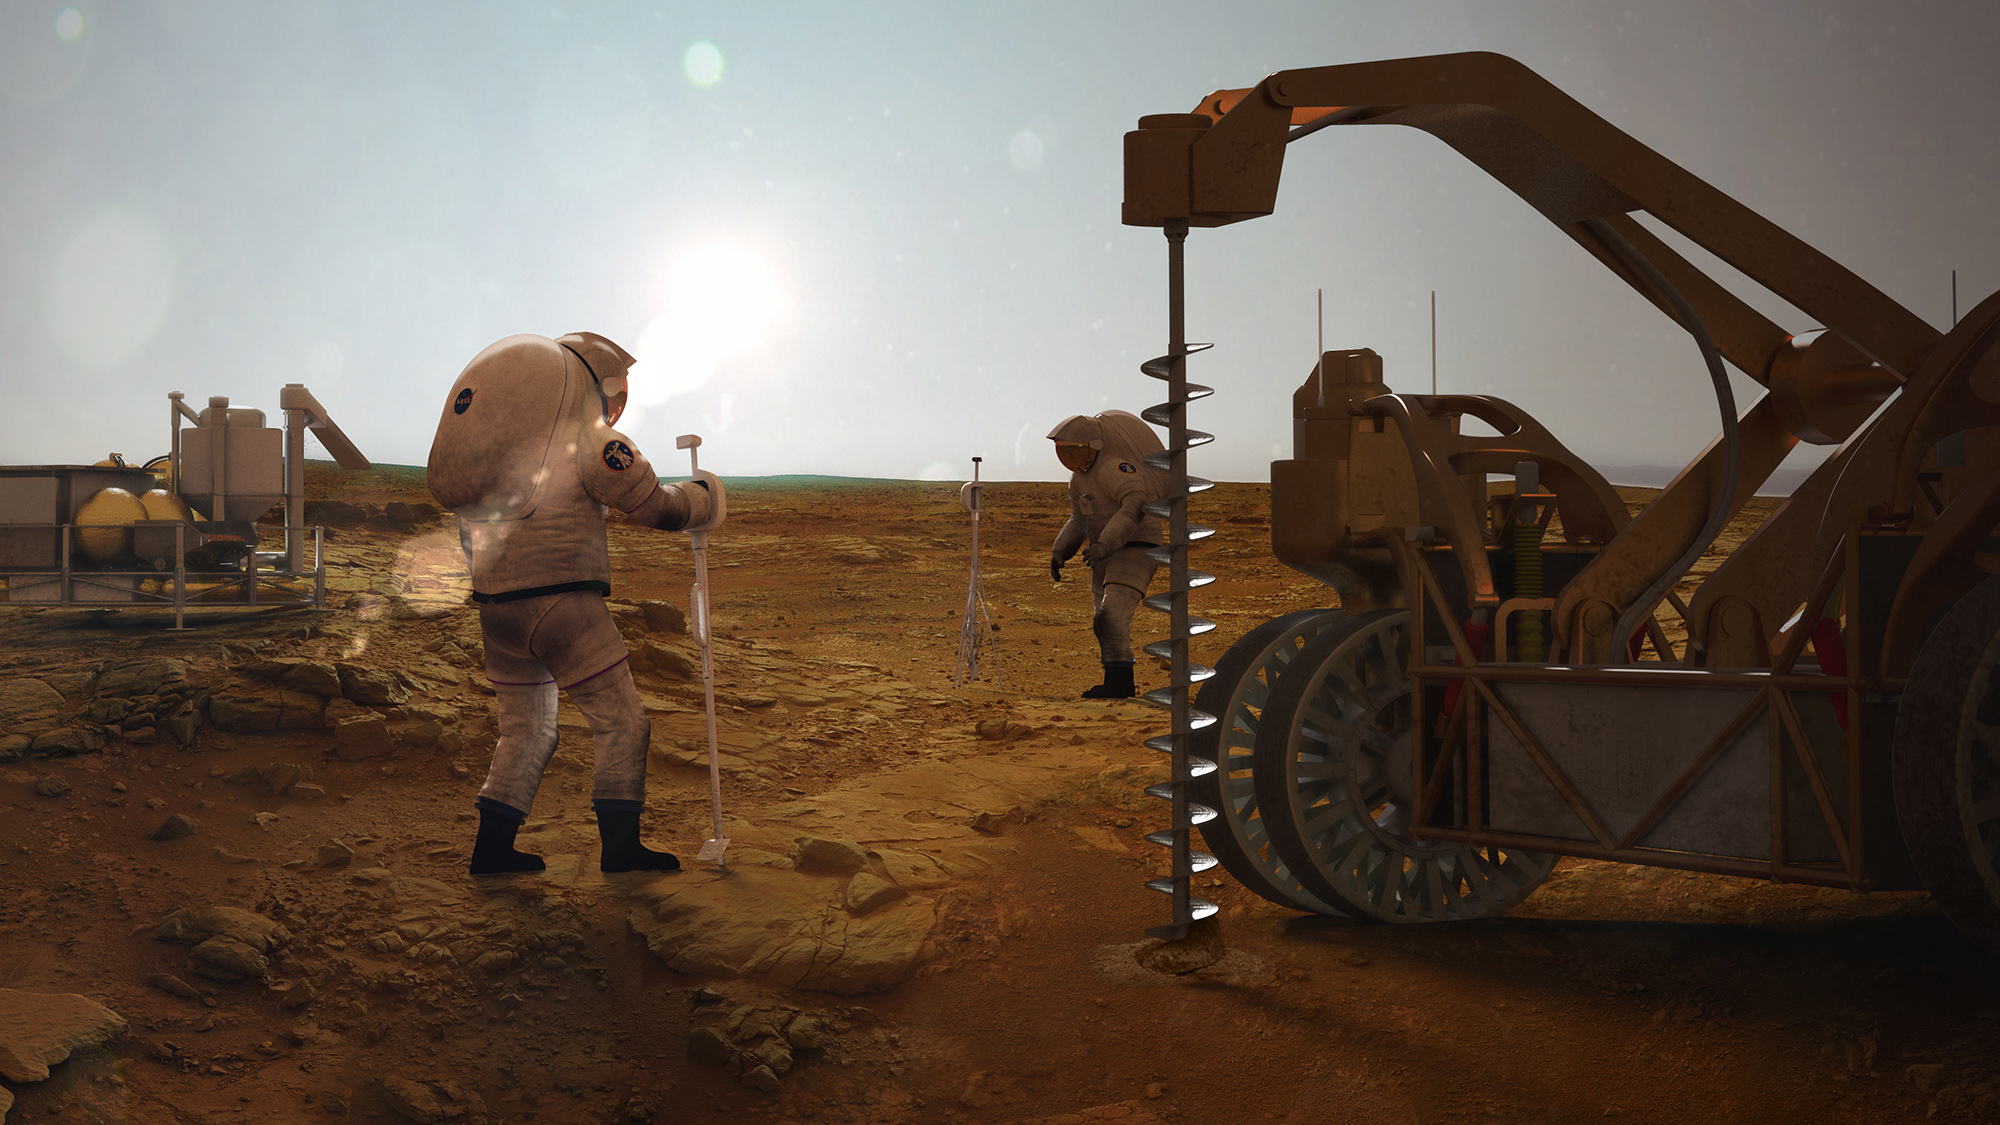 Mars colonists could get fuel and oxygen from water on the Red Planet